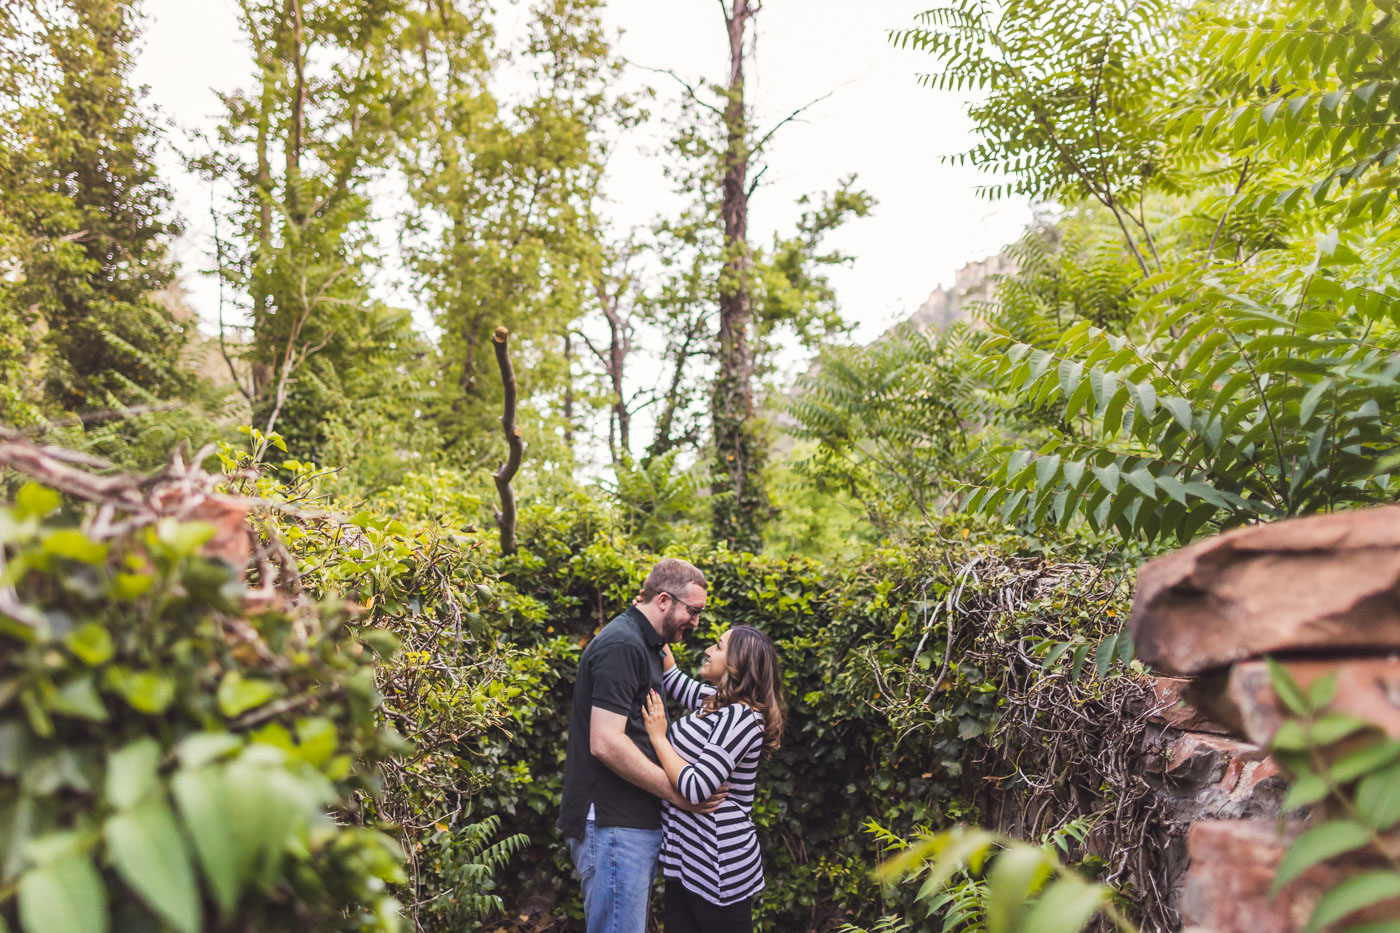 aaron-kes-photography-west-fork-trail-sedona-engagement-session-8.jpg